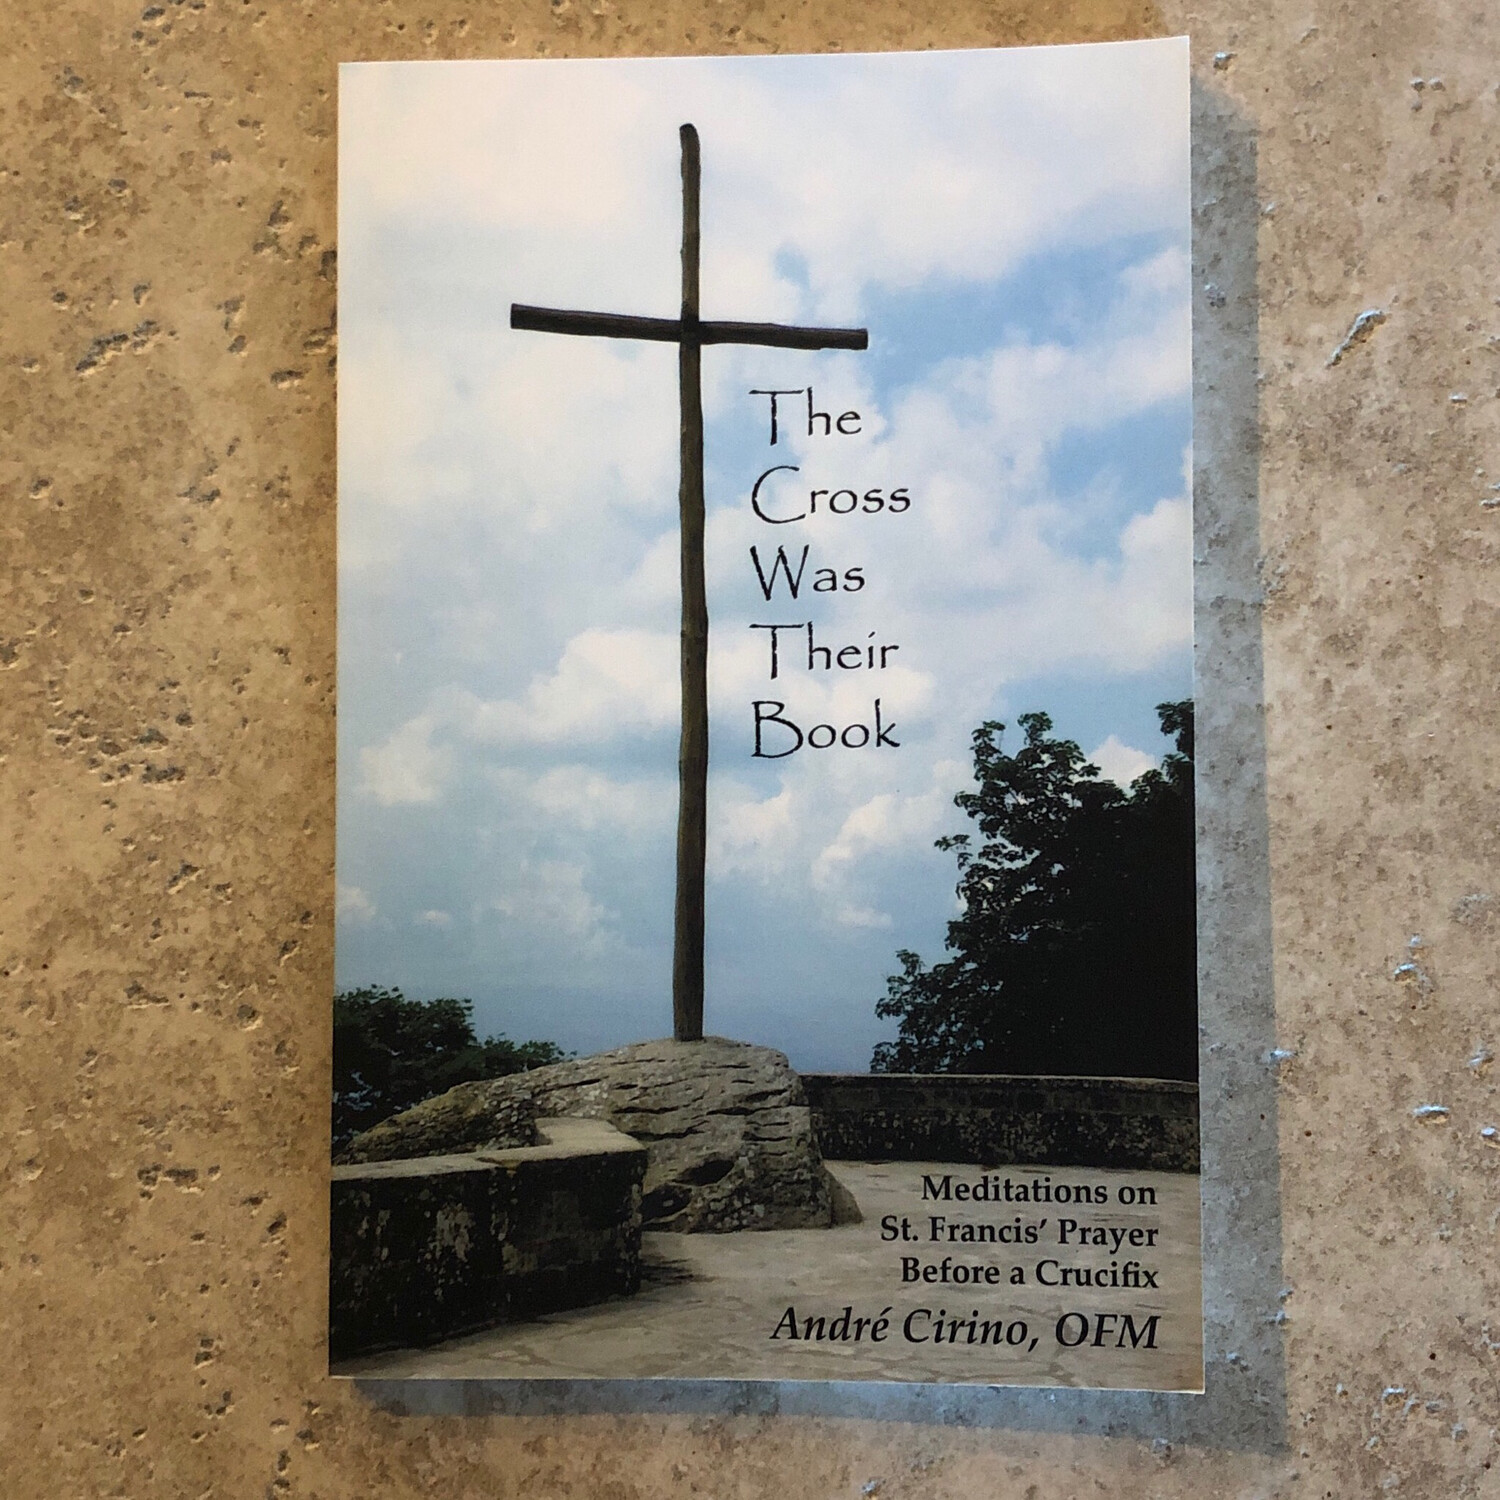 The Cross Was Their Book: Meditations on St Francis' Prayer Before a Crucifix by Andre Cirino, OFM